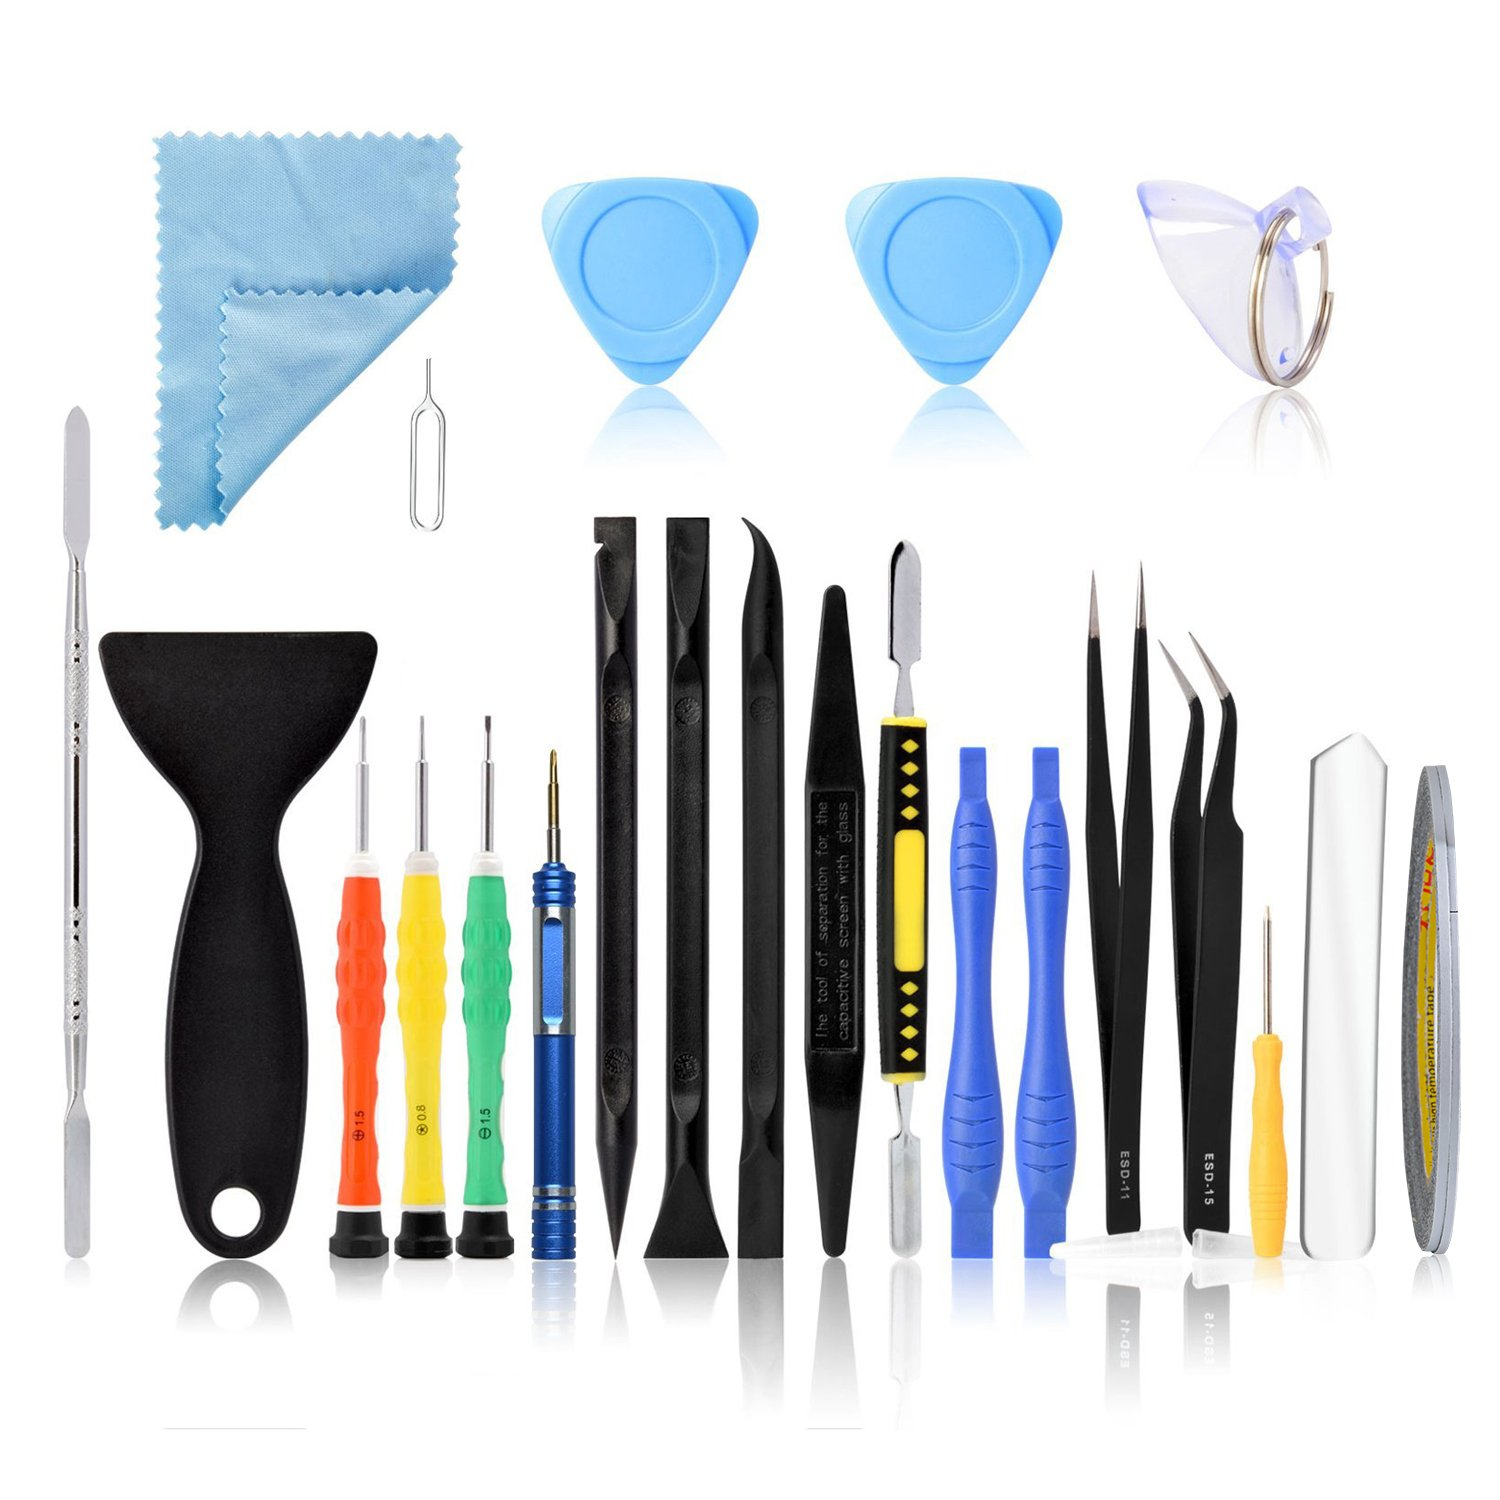 Neuftech 23 Screwdriver Kit Opening Disassembly Repair Tools for iPhone 4 4S 5s 6 Plus 7 iPod iTouch, Samsung S4 S5 S6, Nokia, Huawei etc. Smartphone Cell Phone & Tablet iPad EU-21Set Repair kits